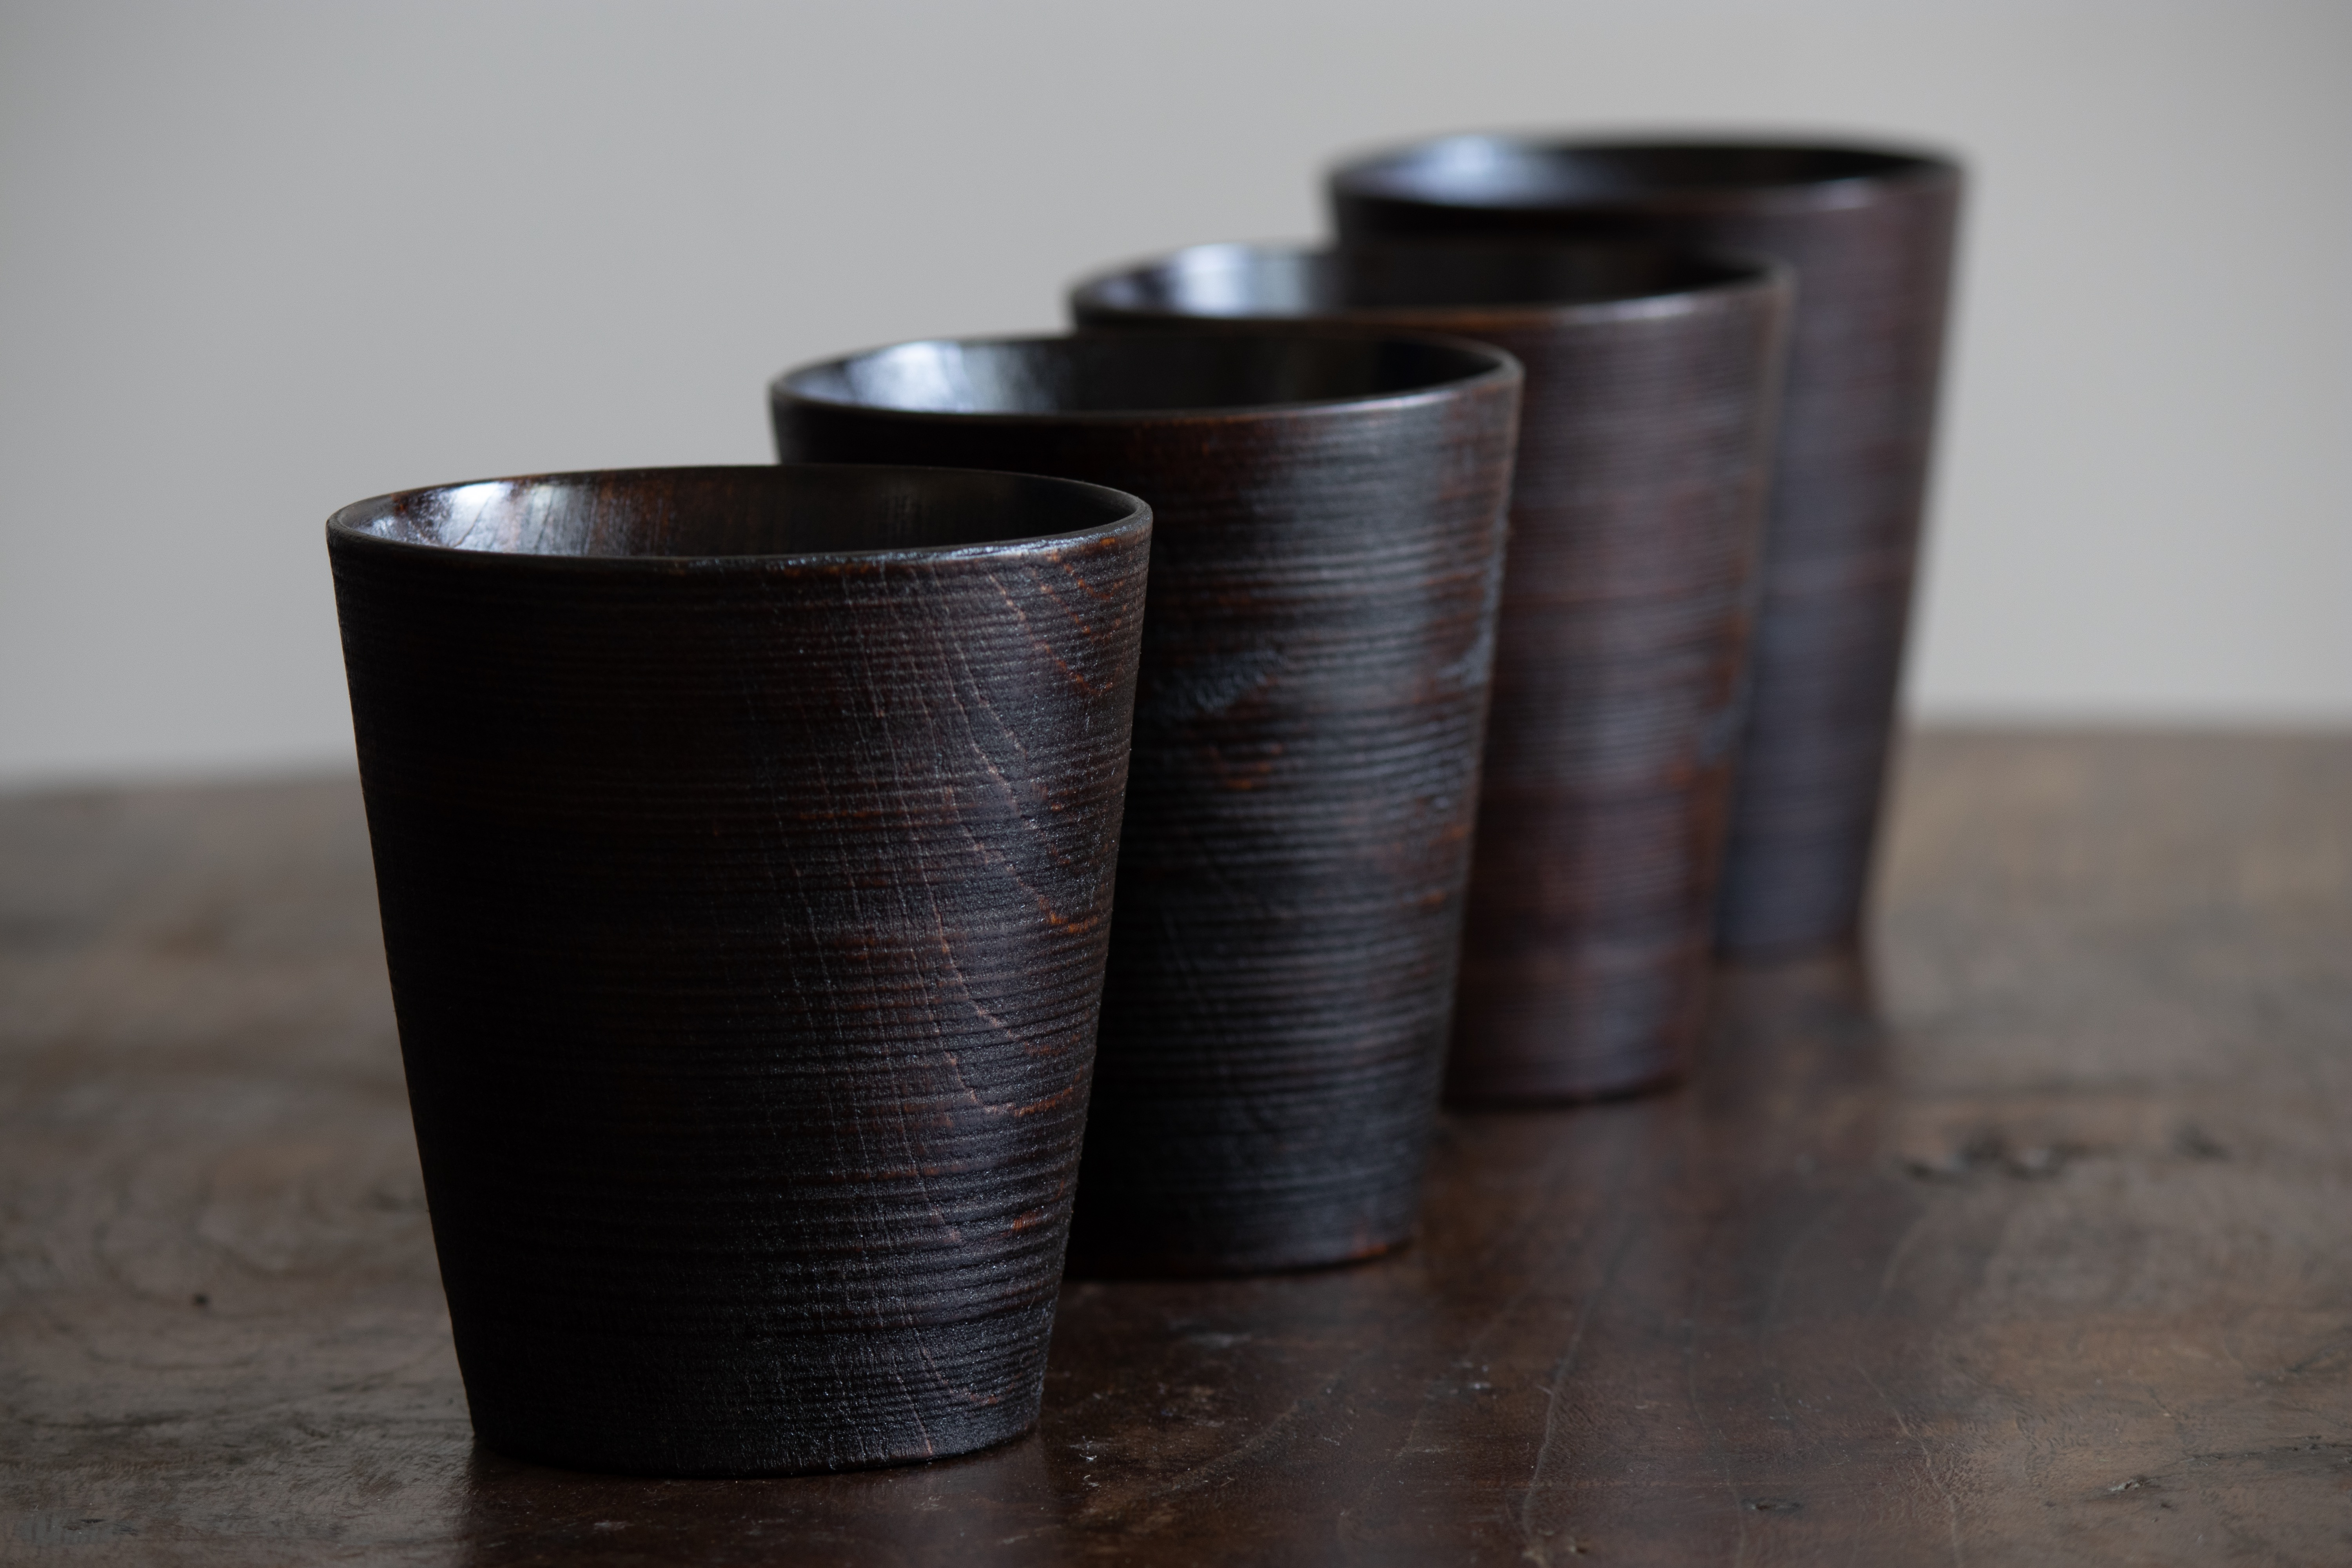 Wooden cups with urushi lacquer finish. Woodspirithandcraft.com